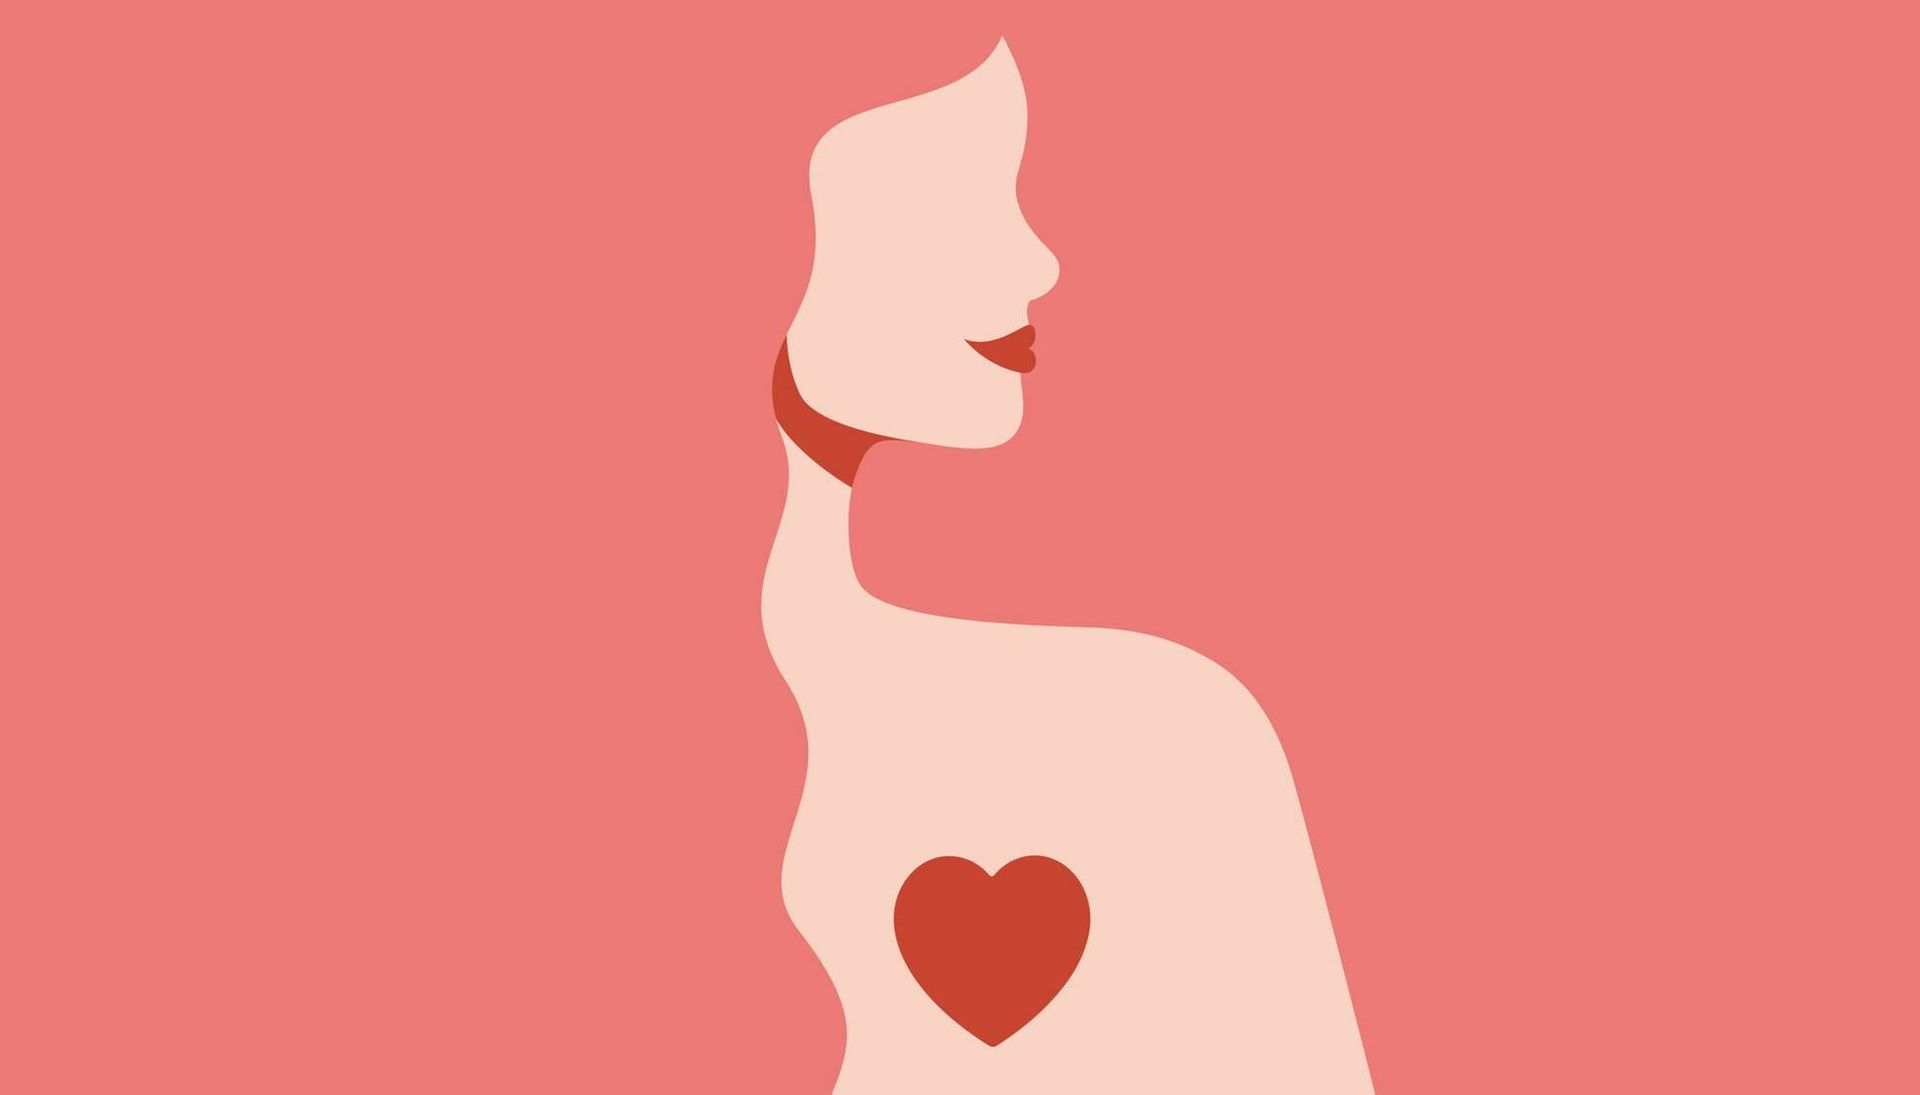 Silhouette illustration of woman with love in her heart